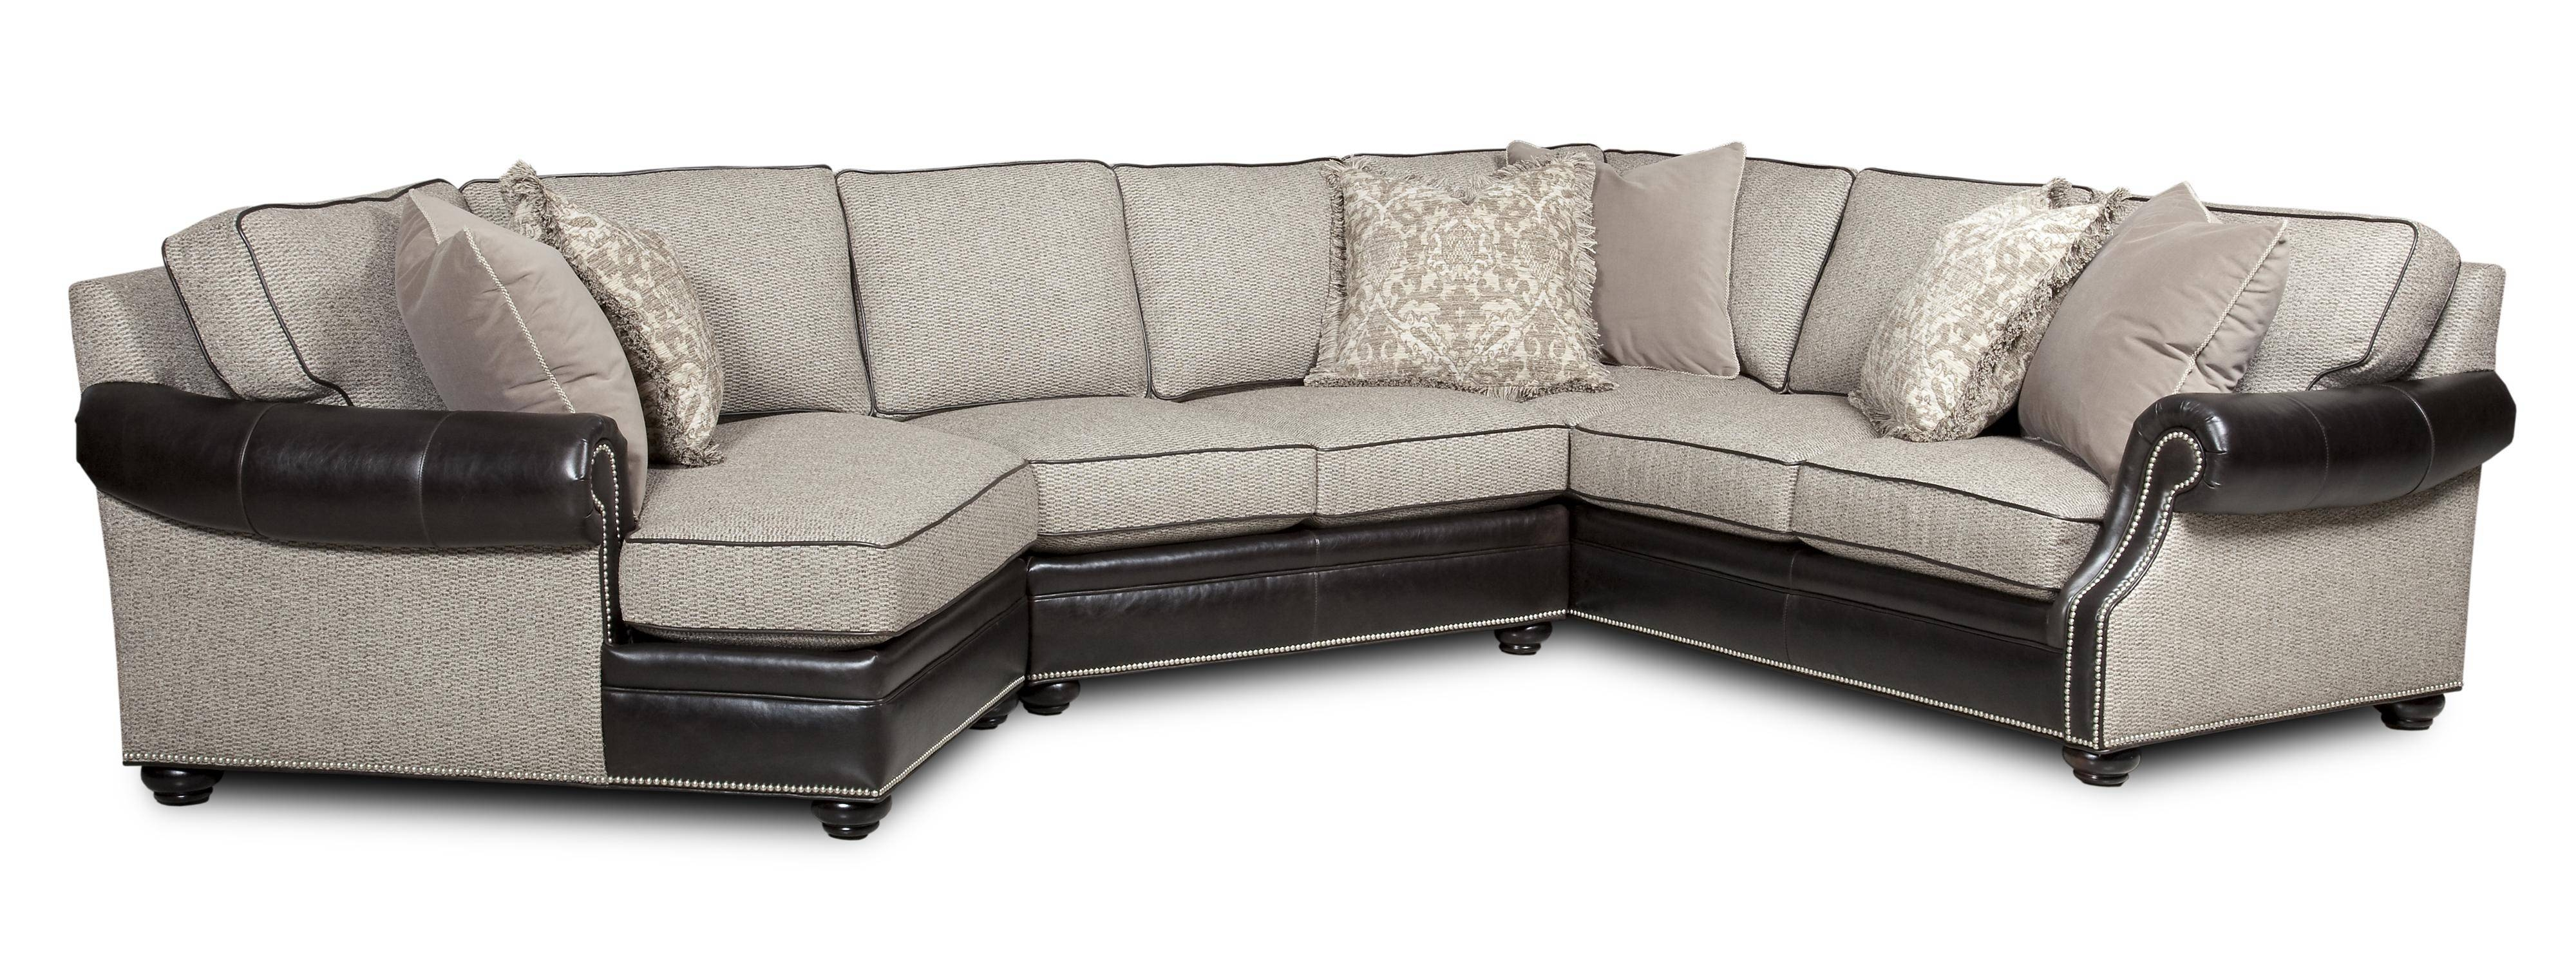 Havertys Sofa Beds Option C Furniture Havertys Sofas For